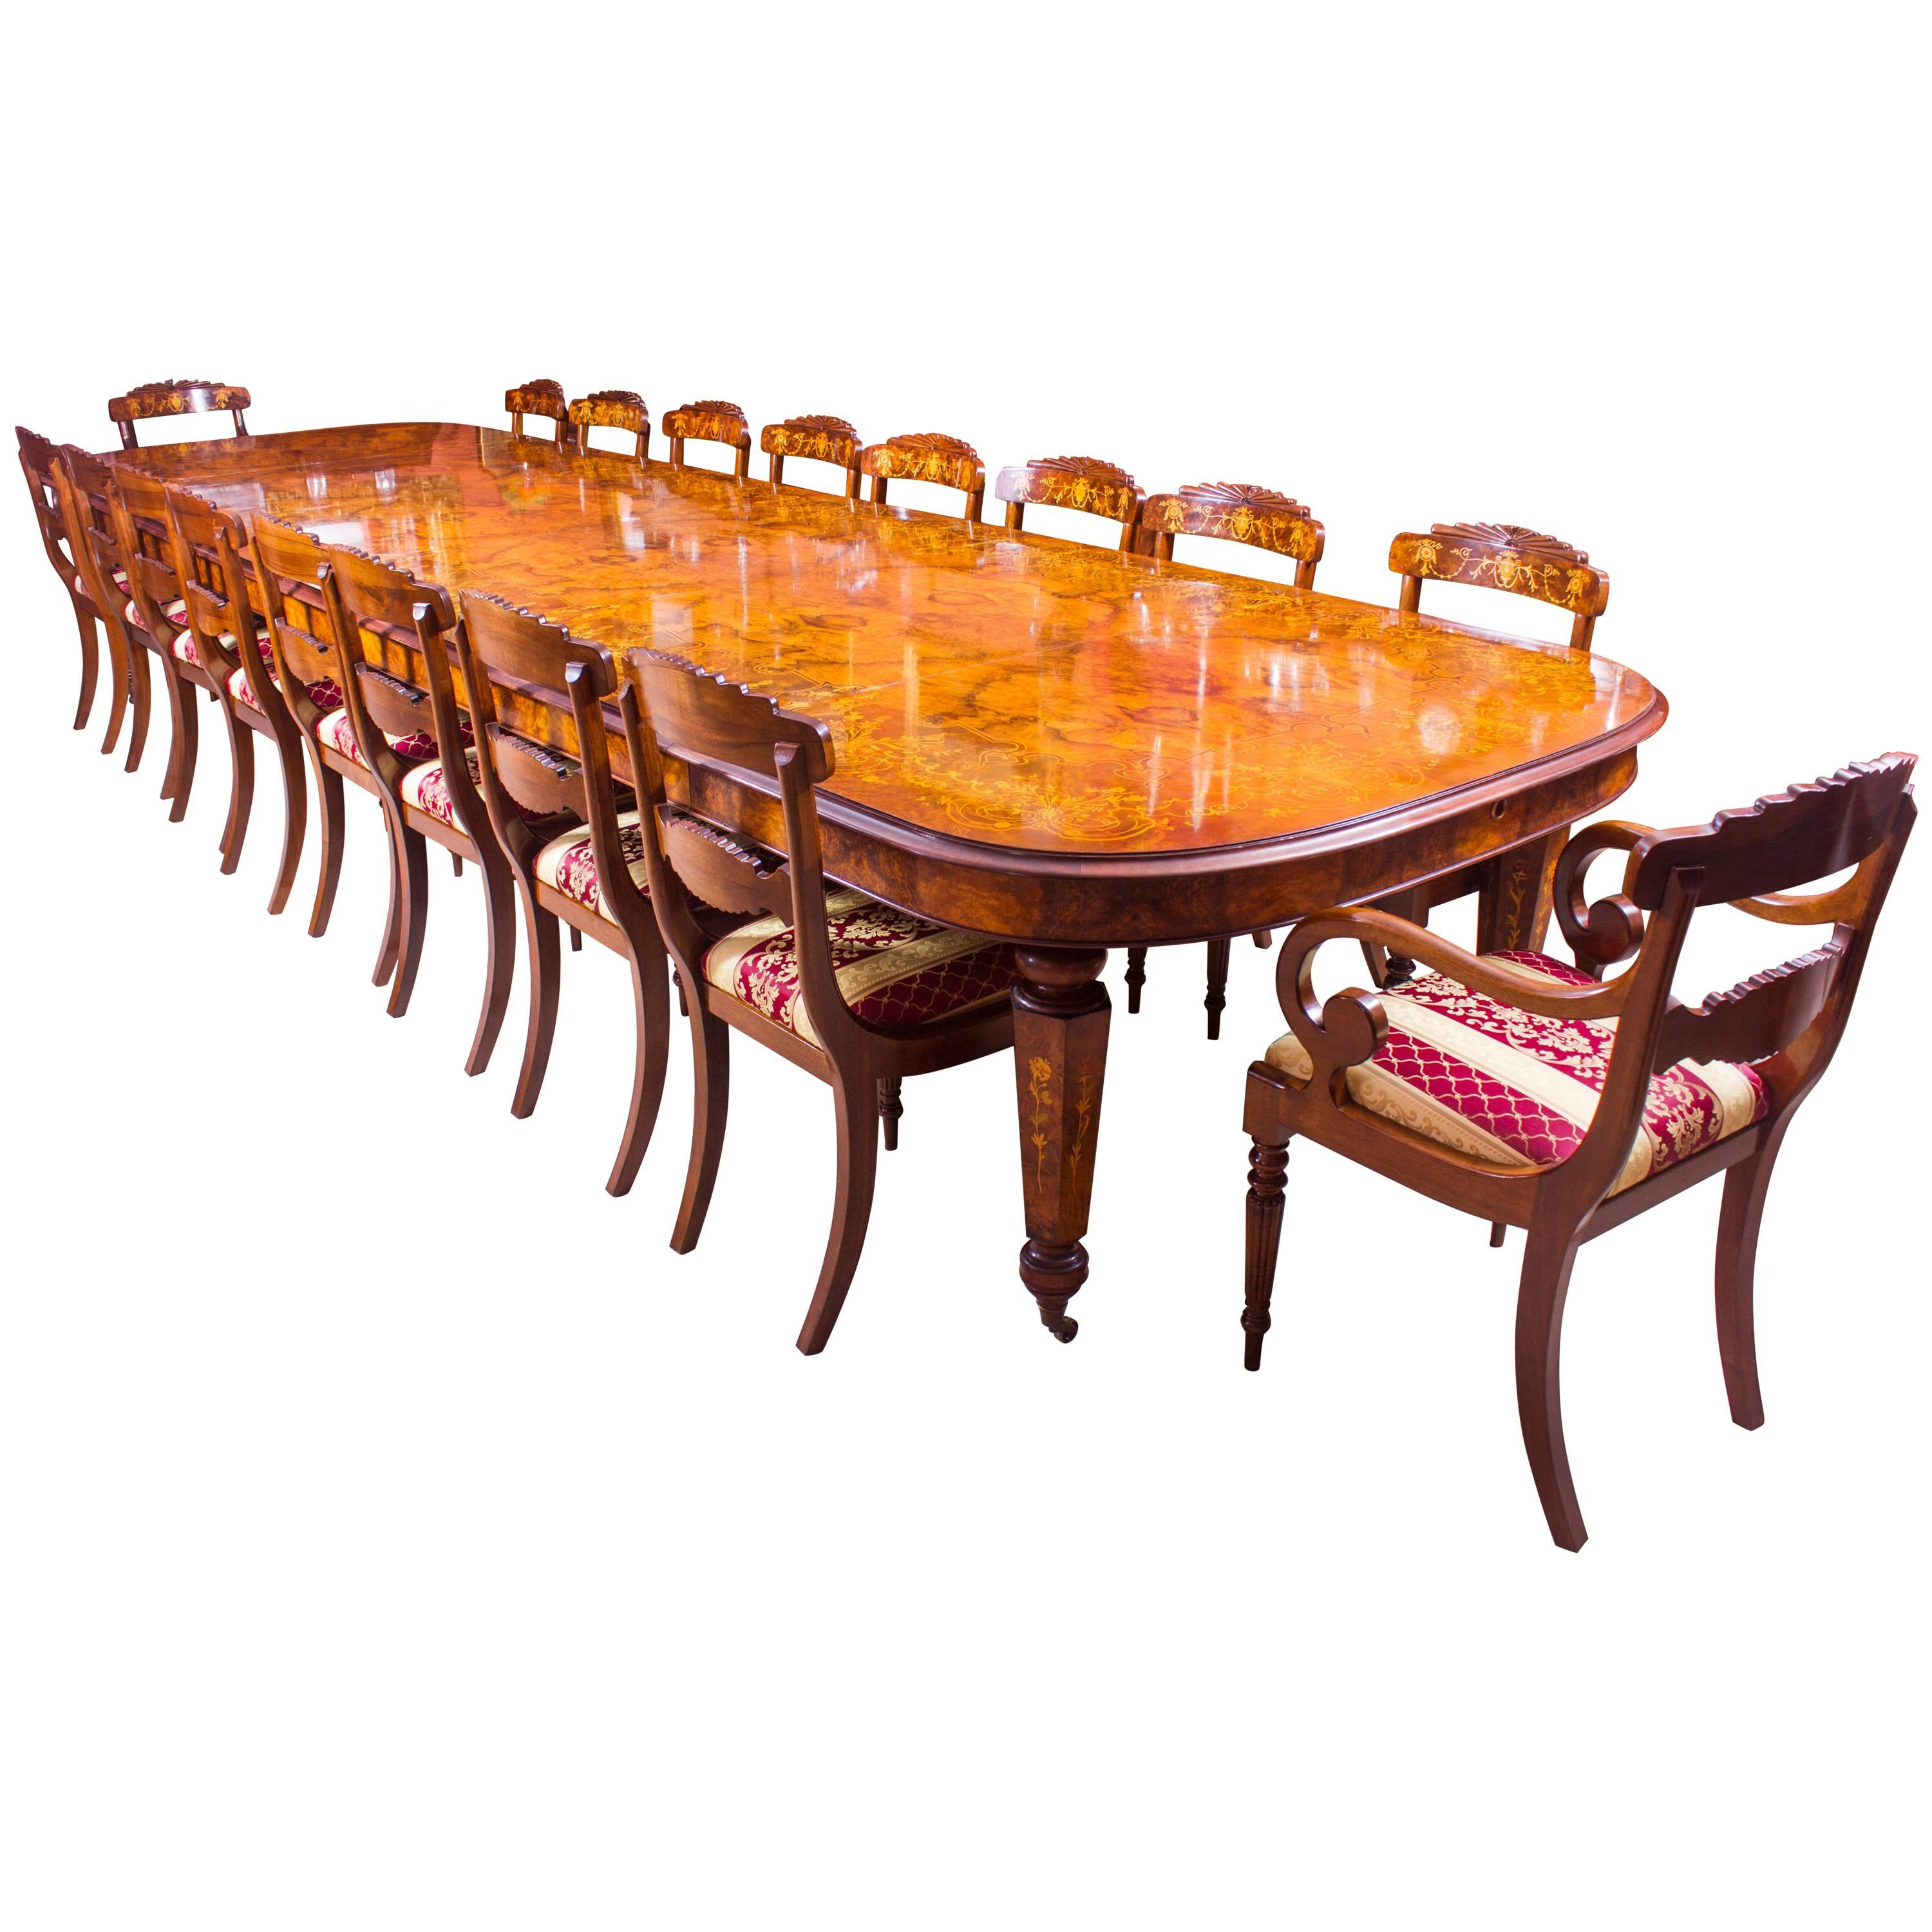 Ordinaire Huge Bespoke Handmade Marquetry Burr Walnut Extending Dining Table 18 Chairs